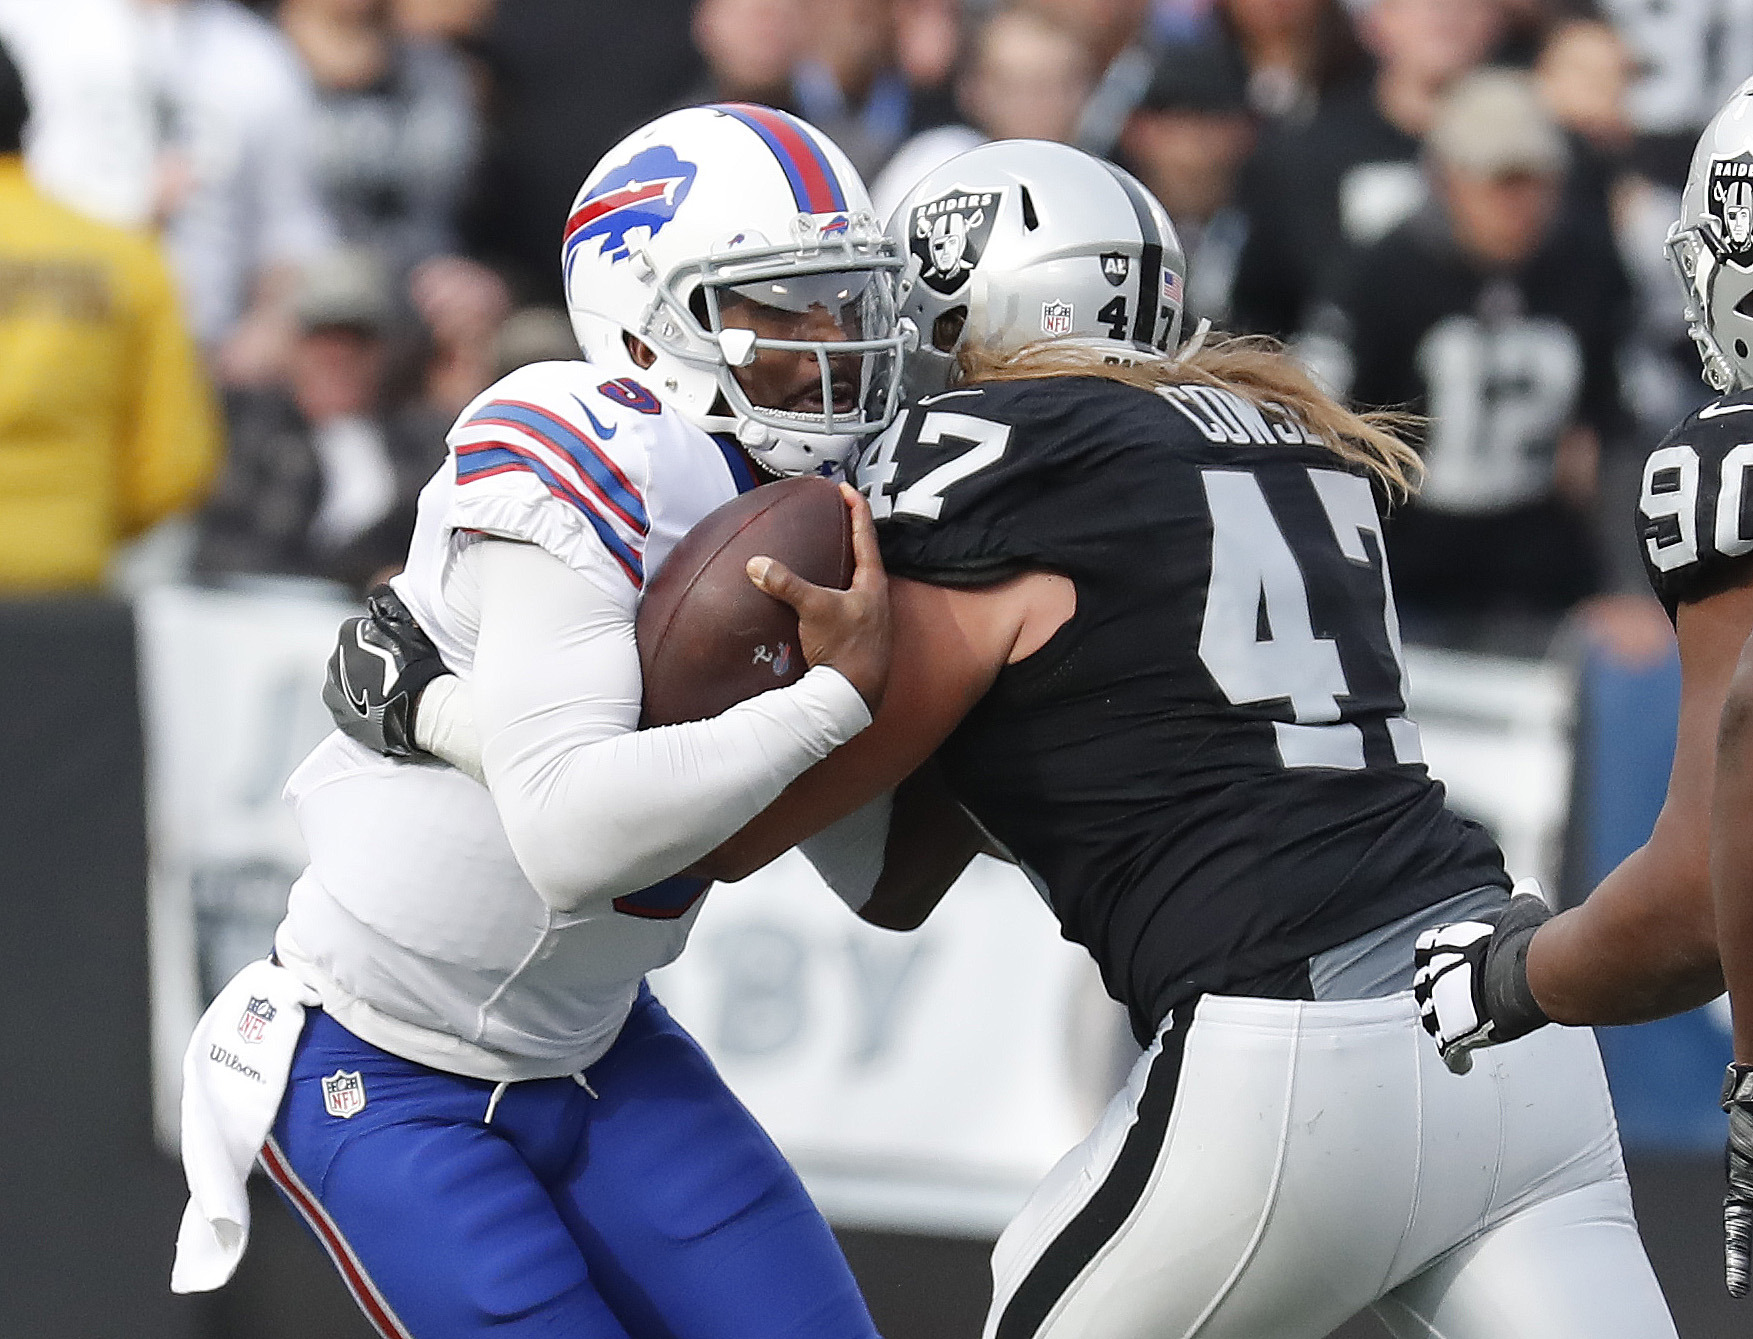 Bills quarterback Tyrod Taylor is under scrutiny after a poor showing Sunday in Oakland. (Harry Scull Jr./Buffalo News)